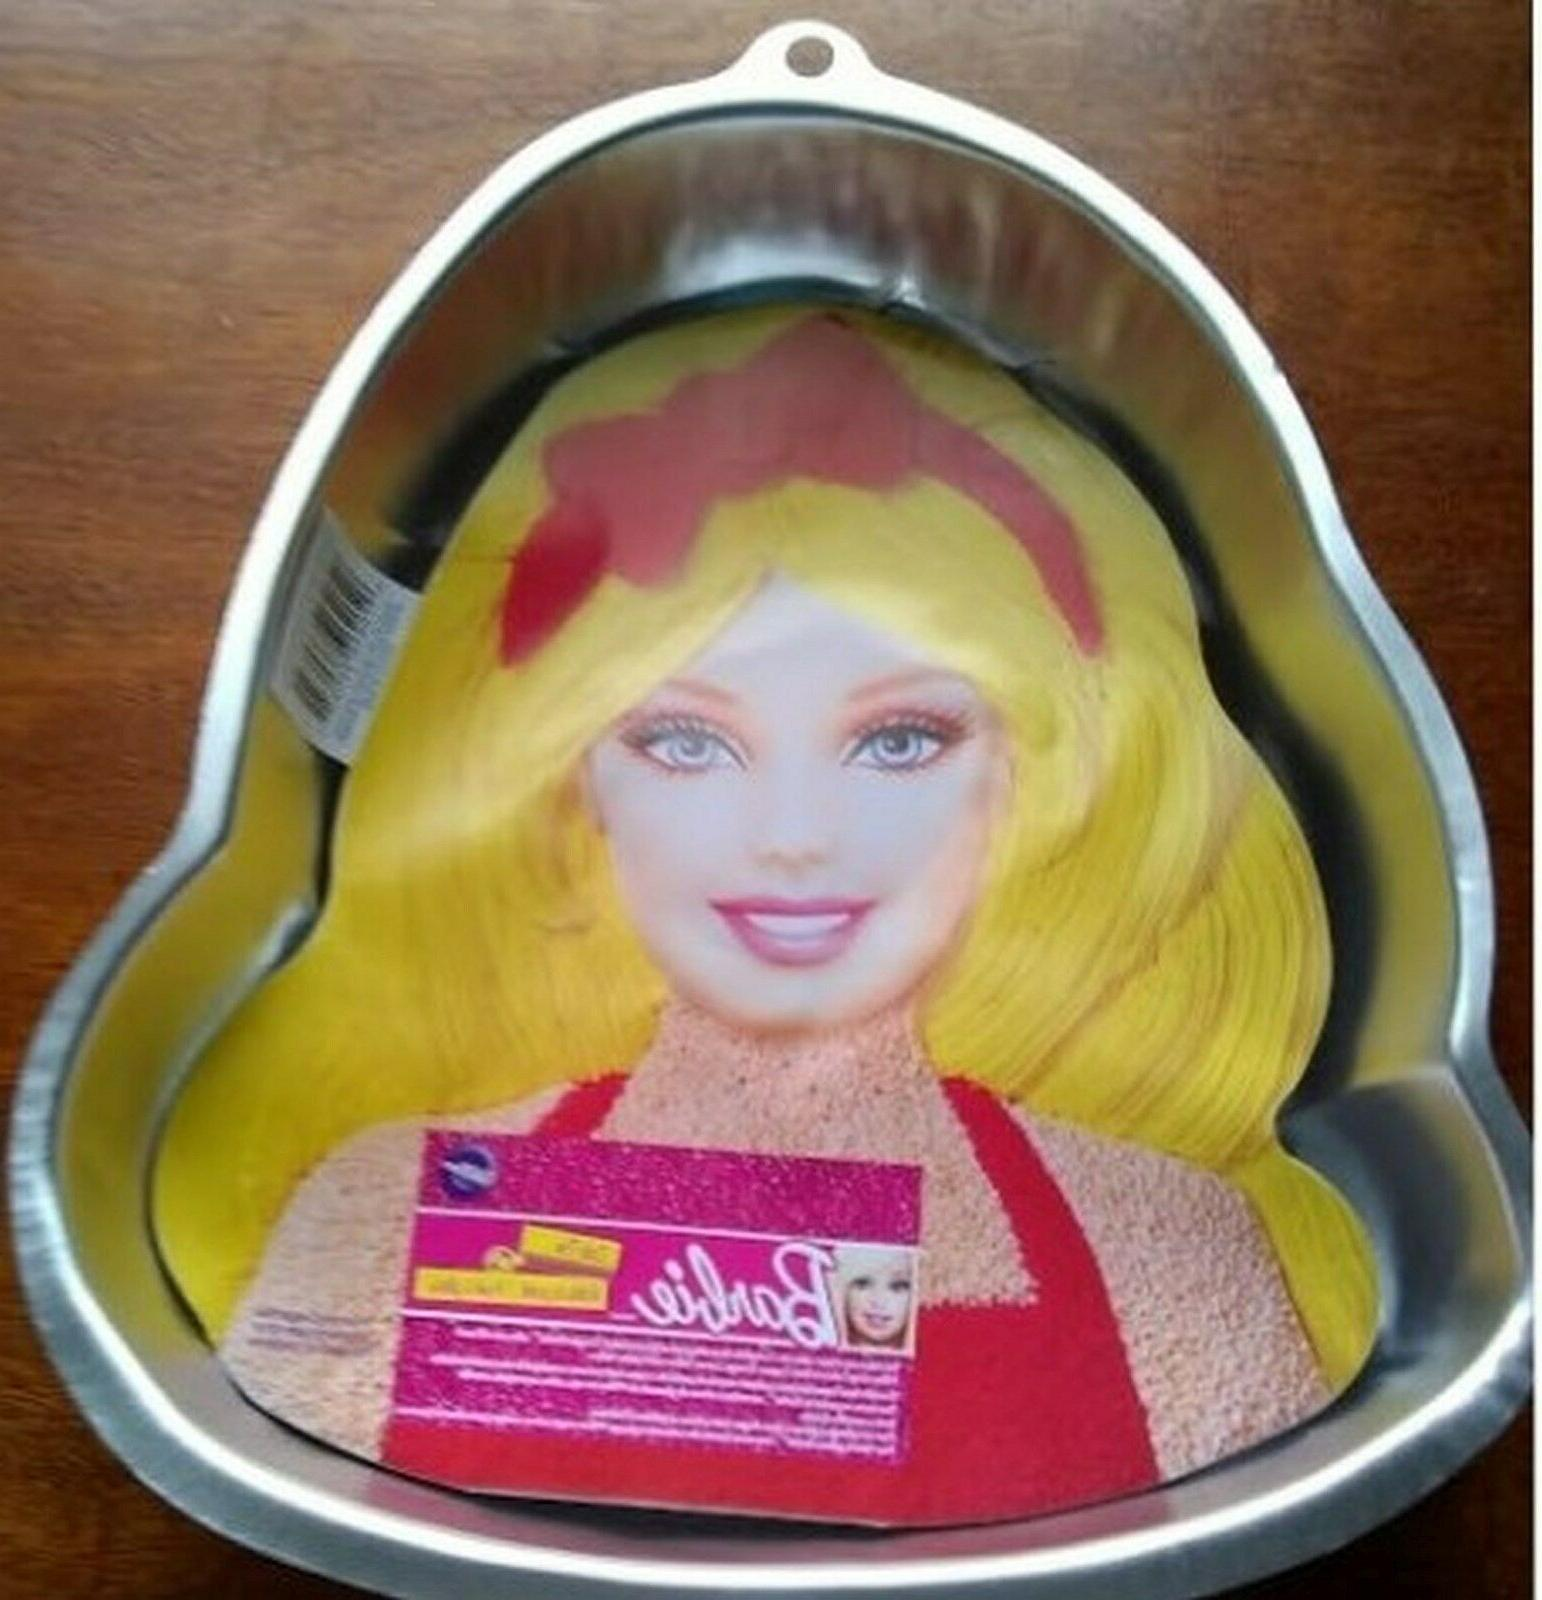 WILTON BARBIE CAKE PAN with Face Plate Decor & Instructions